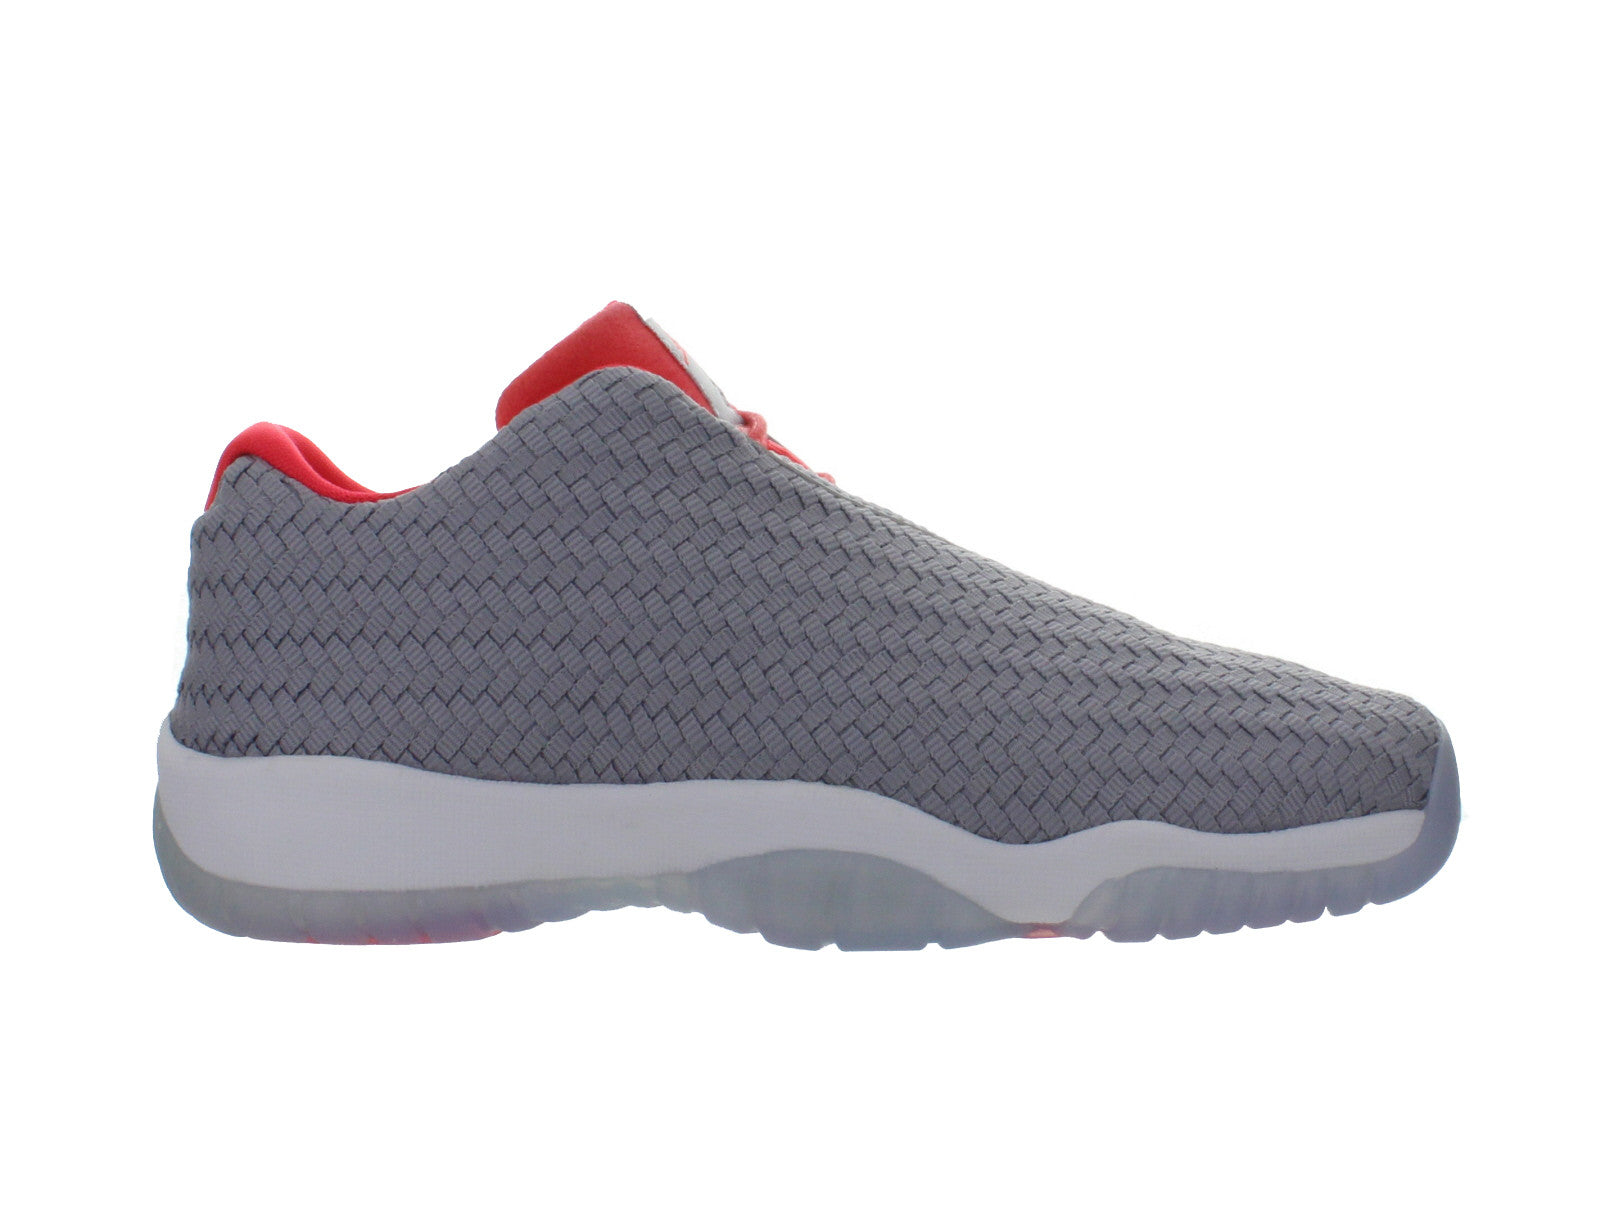 best website 5f4e9 96316 Air Jordan Future Low GS Wolf Grey Infrared 23 White 724813-023